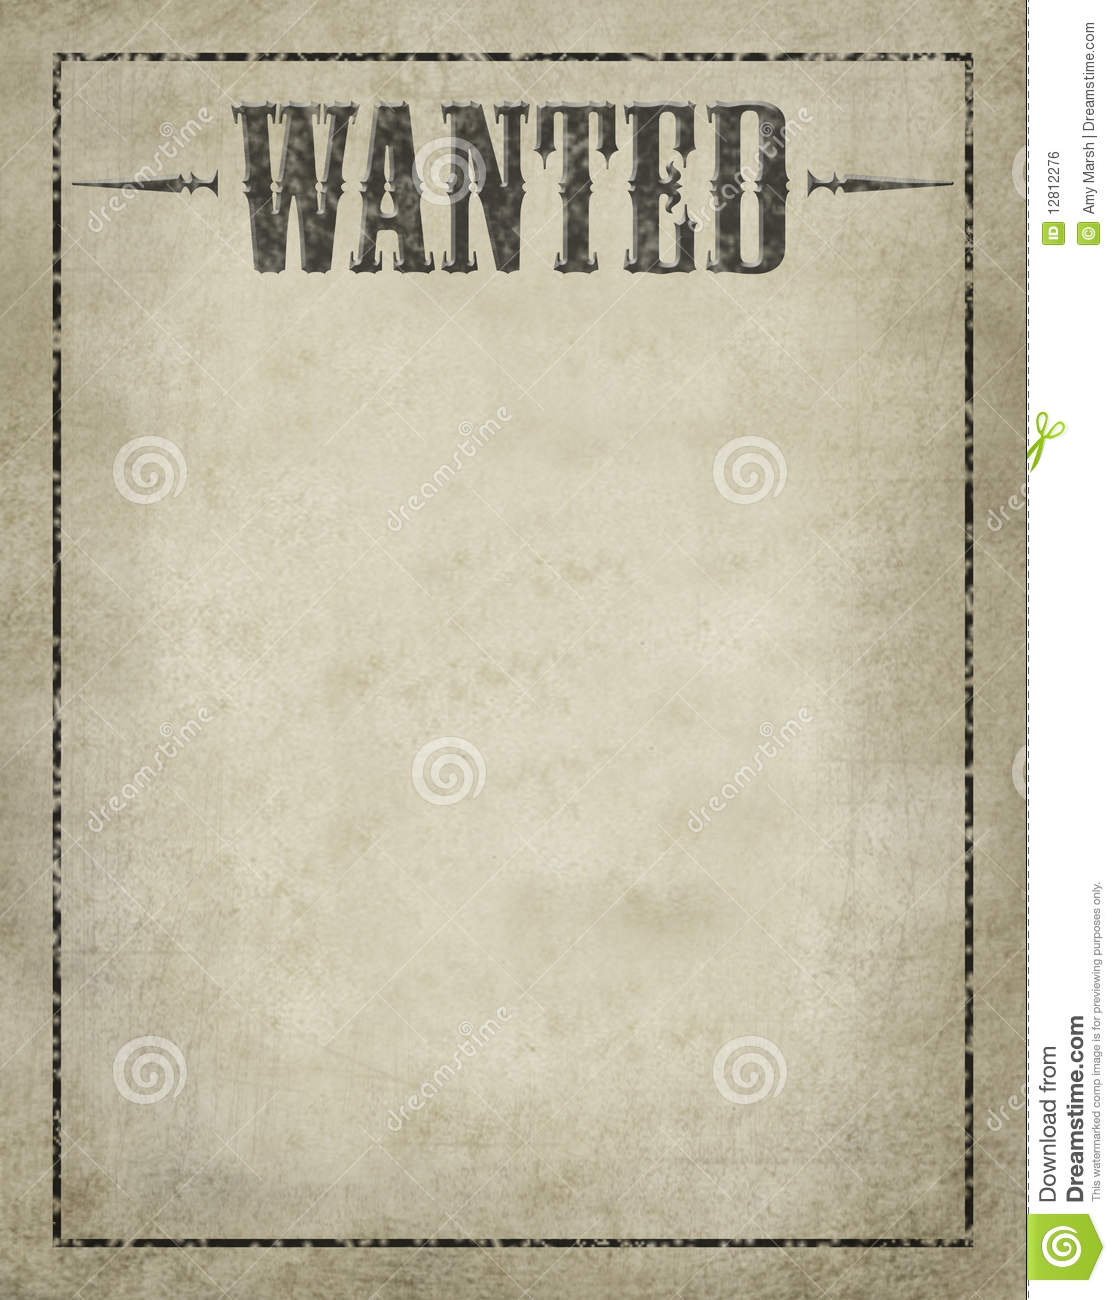 Fbi Wanted Poster Template 01 147 00 kb pics photos all – Wanted Template Poster